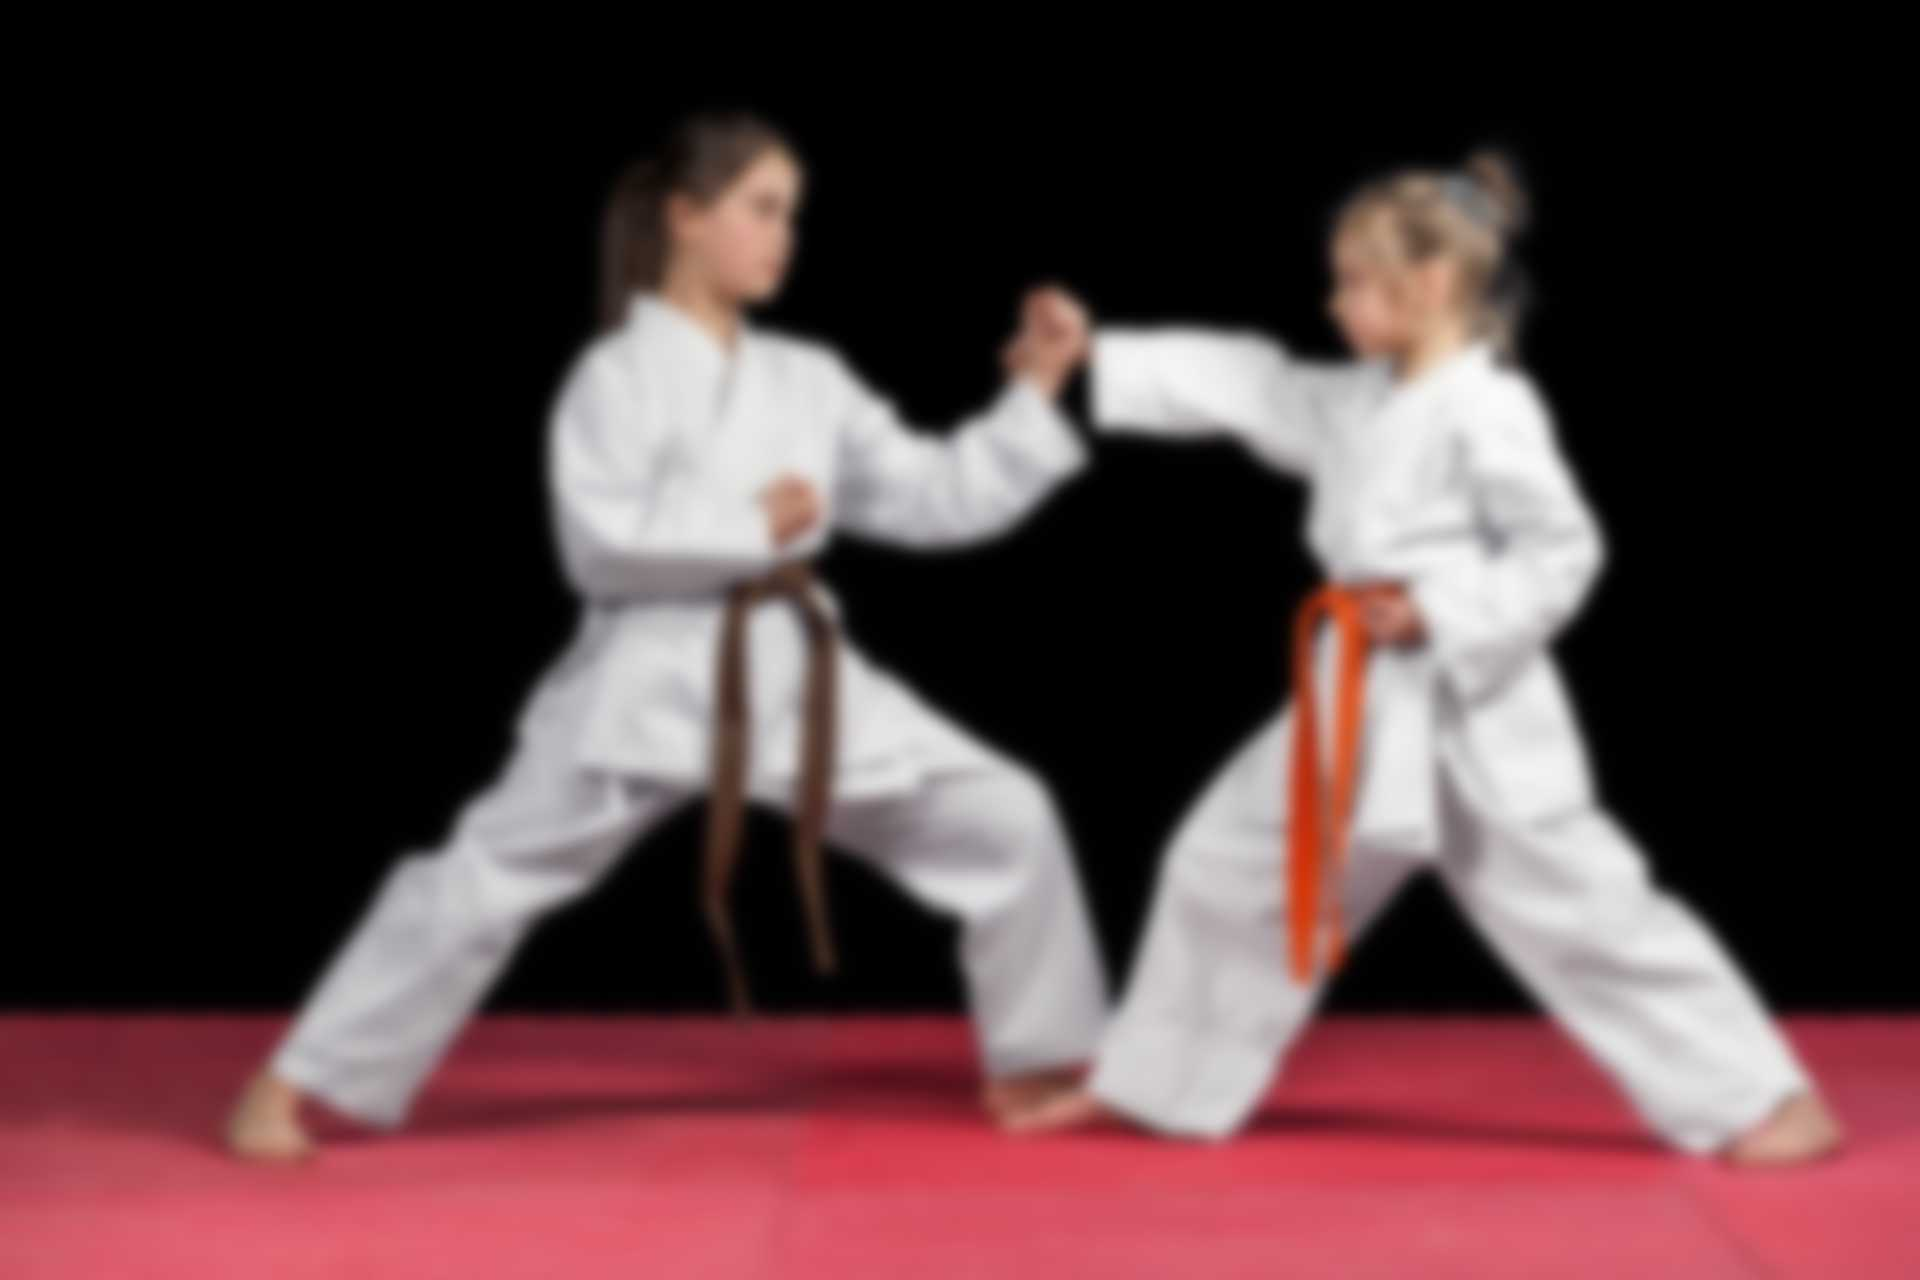 //usa-martial-arts.com/wp-content/uploads/2018/02/img_11.jpg